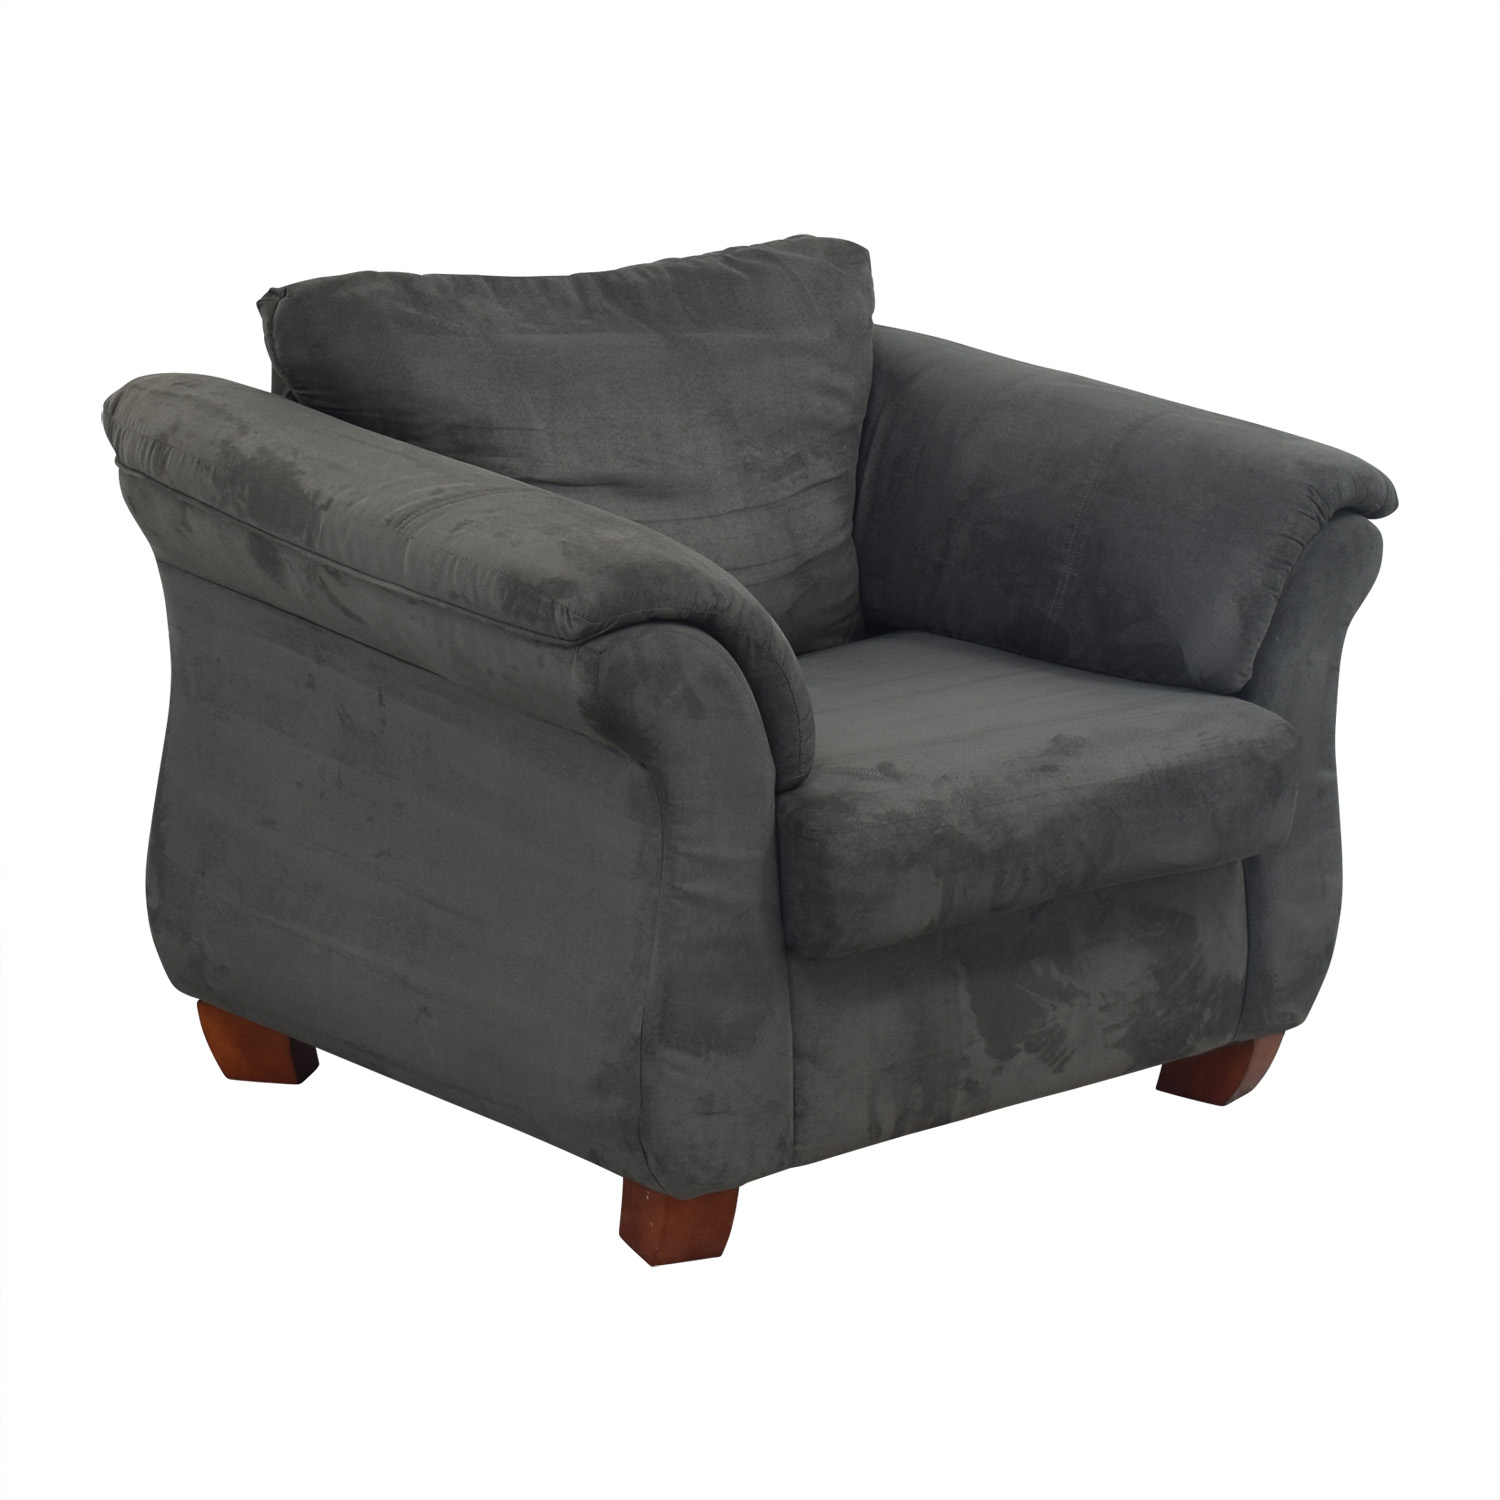 90 Off Value City Furniture Value City Furniture Grey